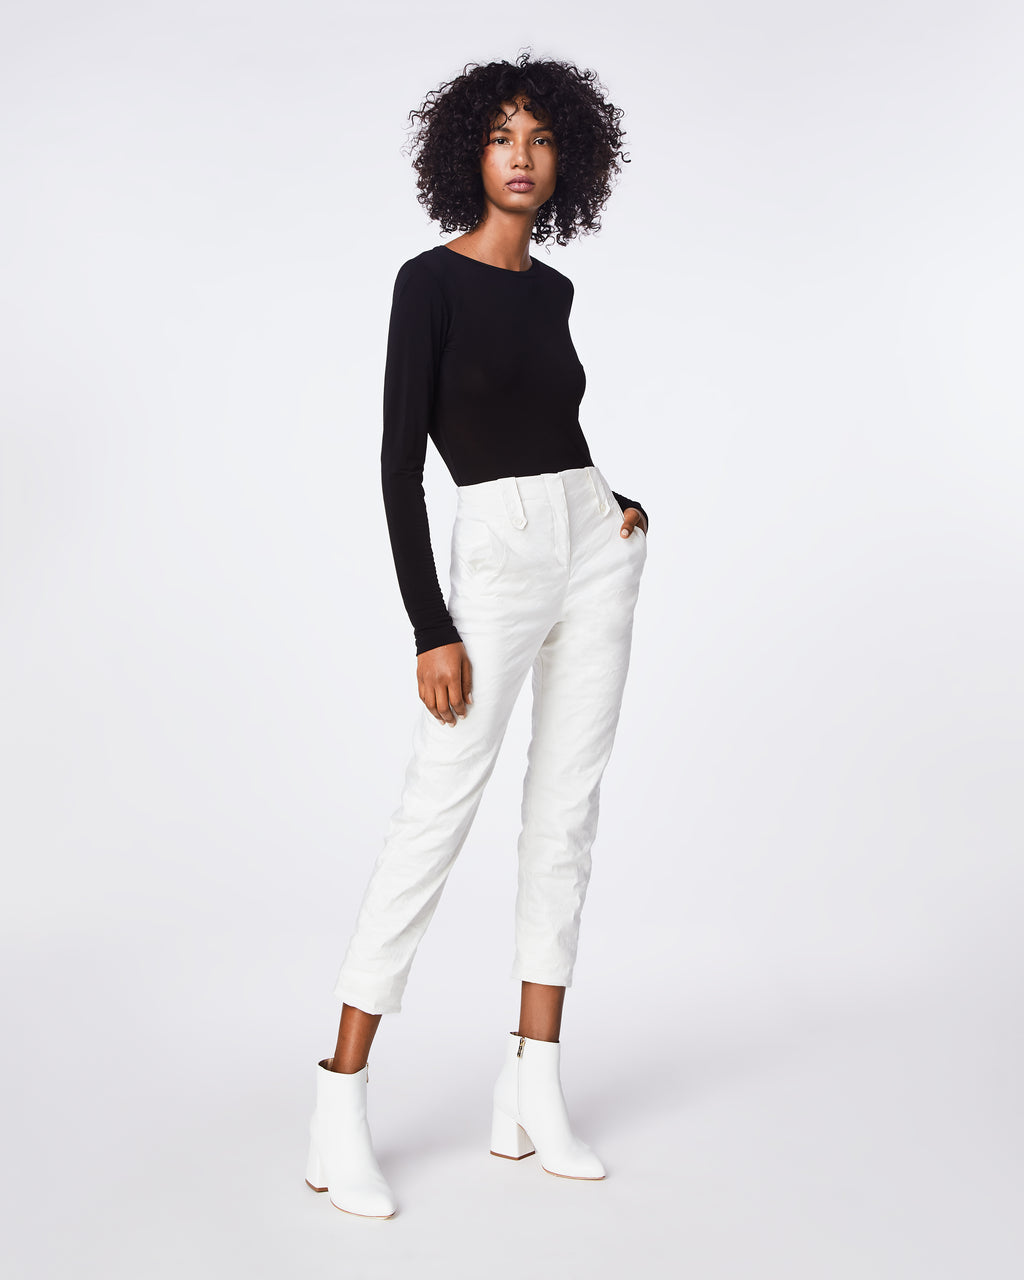 BK10276 - COTTON METAL TROUSER PANT - bottoms - pants - In our signature cotton metal fabric, this trouser pant is ruched along the sides for tappered fit. Pair it back with the cotton metal off the shoulder top for a statement look. Fully lined.